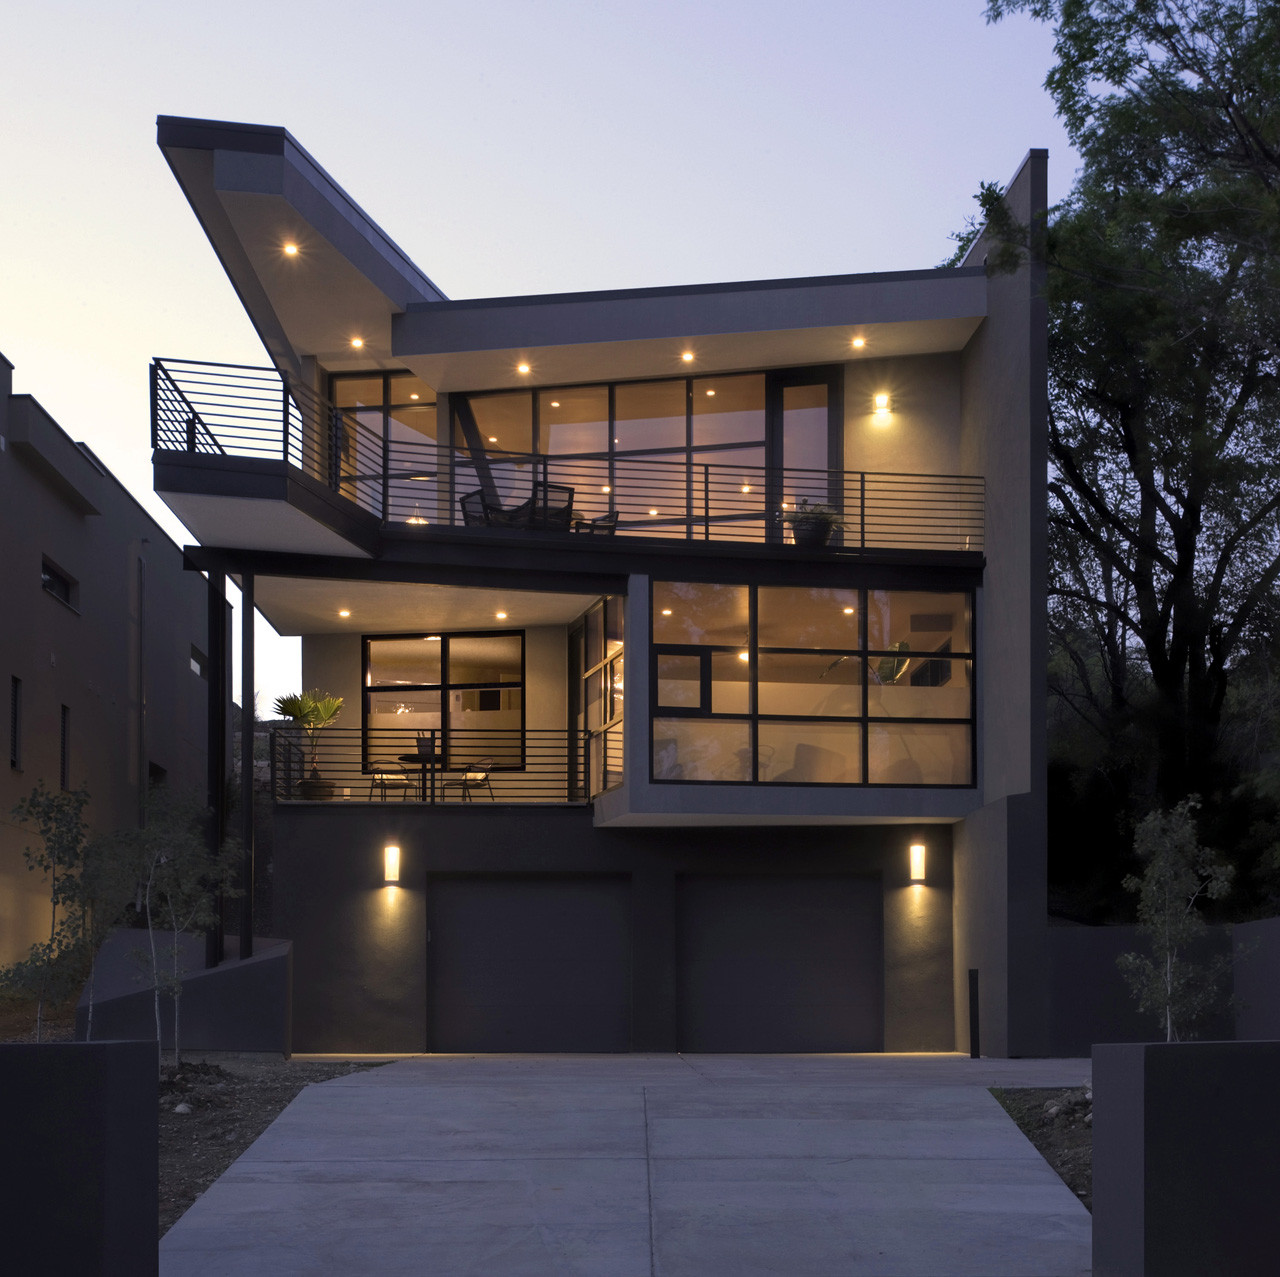 Fractured House / Studio H:T, © Raul Garcia